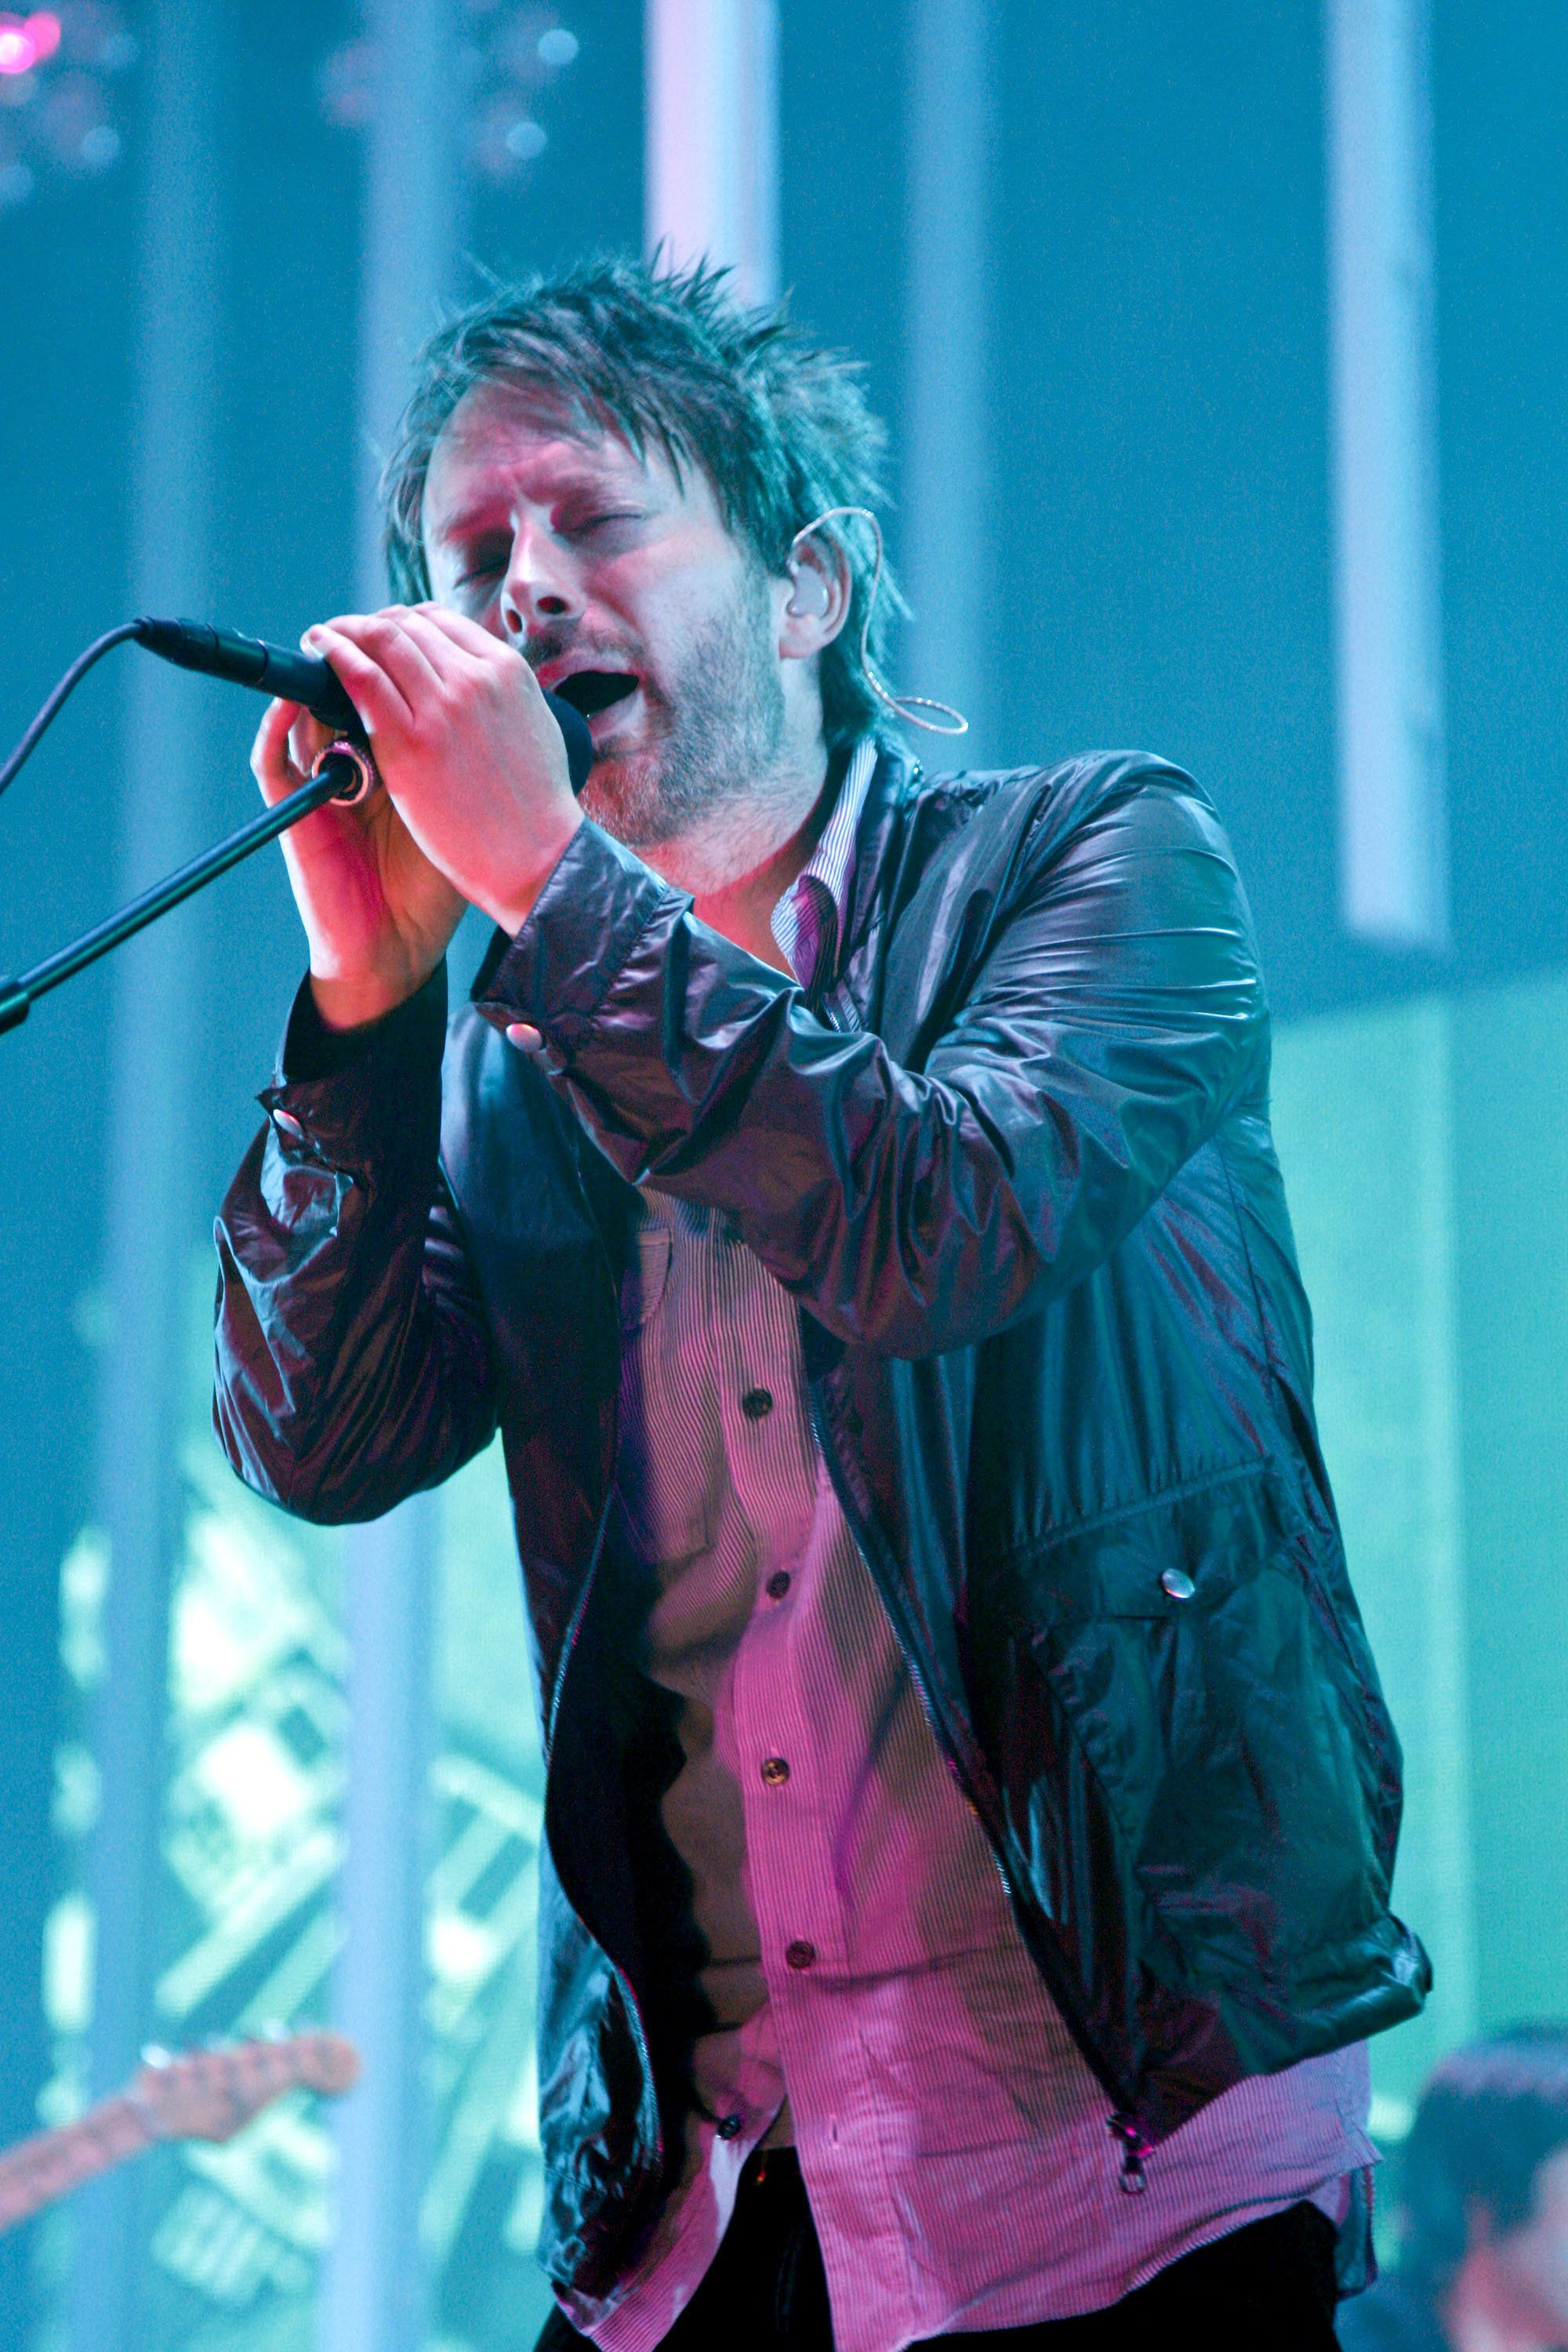 TORONTO, ON - AUGUST 15:  Musician Thom Yorke of Radiohead Performs at the Molson Amphitheatre on August 15, 2008 in Toronto, Canada.  (Photo by George Pimentel/WireImage)